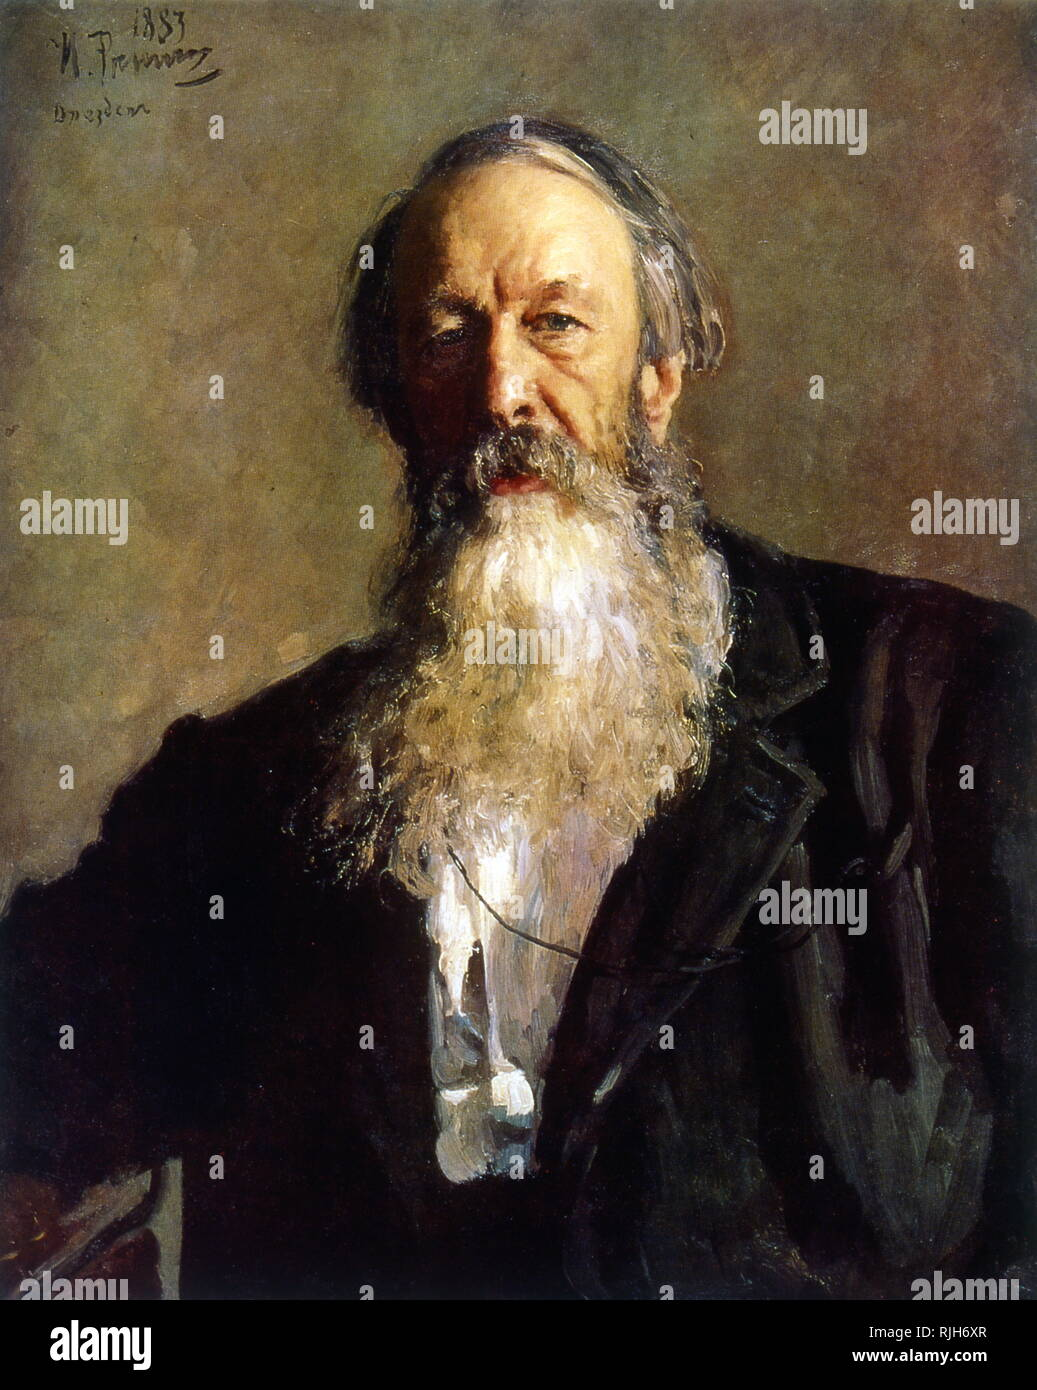 Portrait of V.V. Stasov, 1883, by Ilya Repin (1844 - 1930), Russian, realist painter. Vladimir Vasilievich Stasov (1824 - 1906), respected Russian critic and friend of Tolstoy Stock Photo